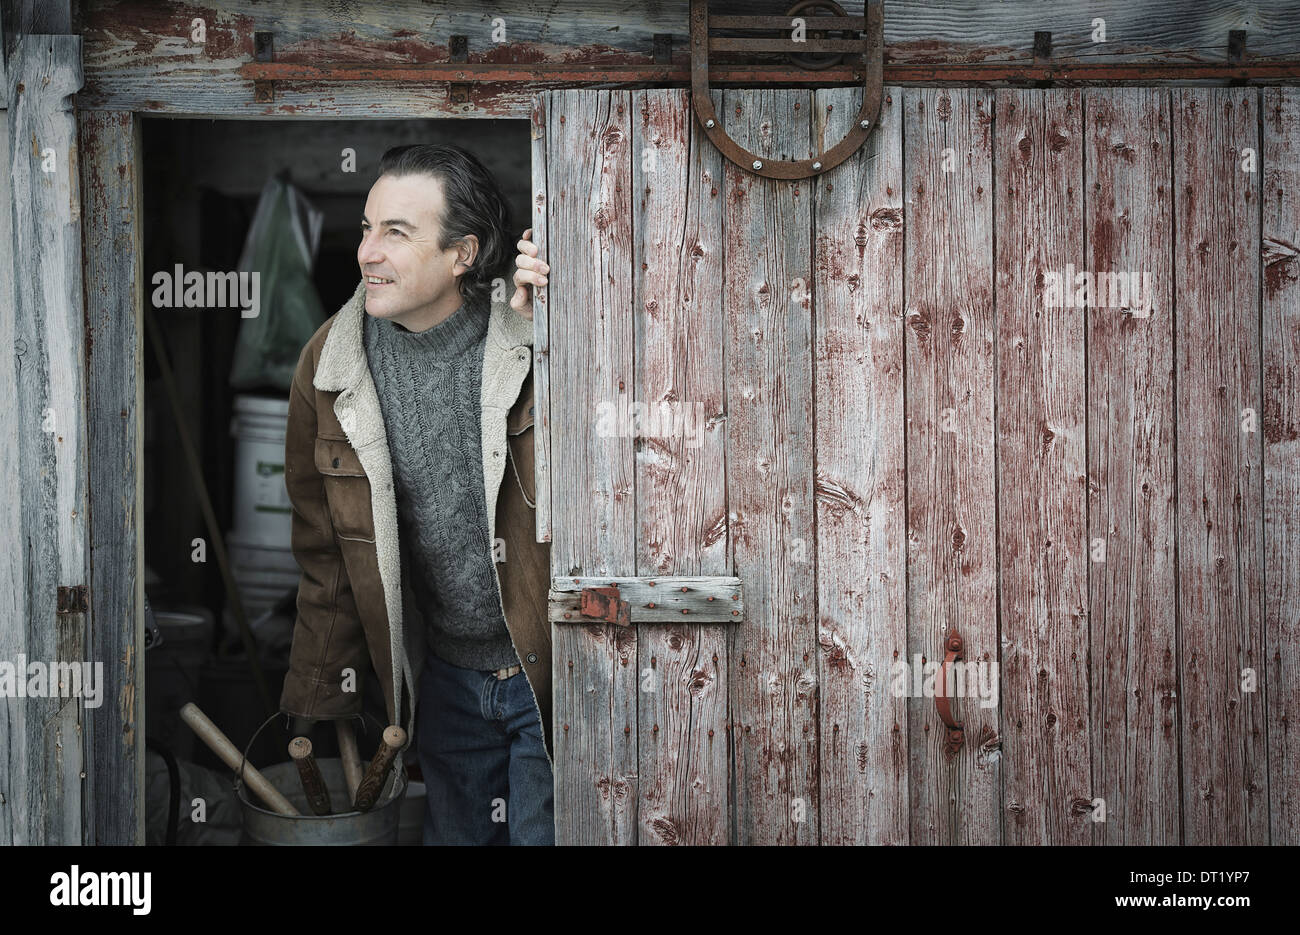 An organic farm in upstate New York in winter A man at an open barn door - Stock Image